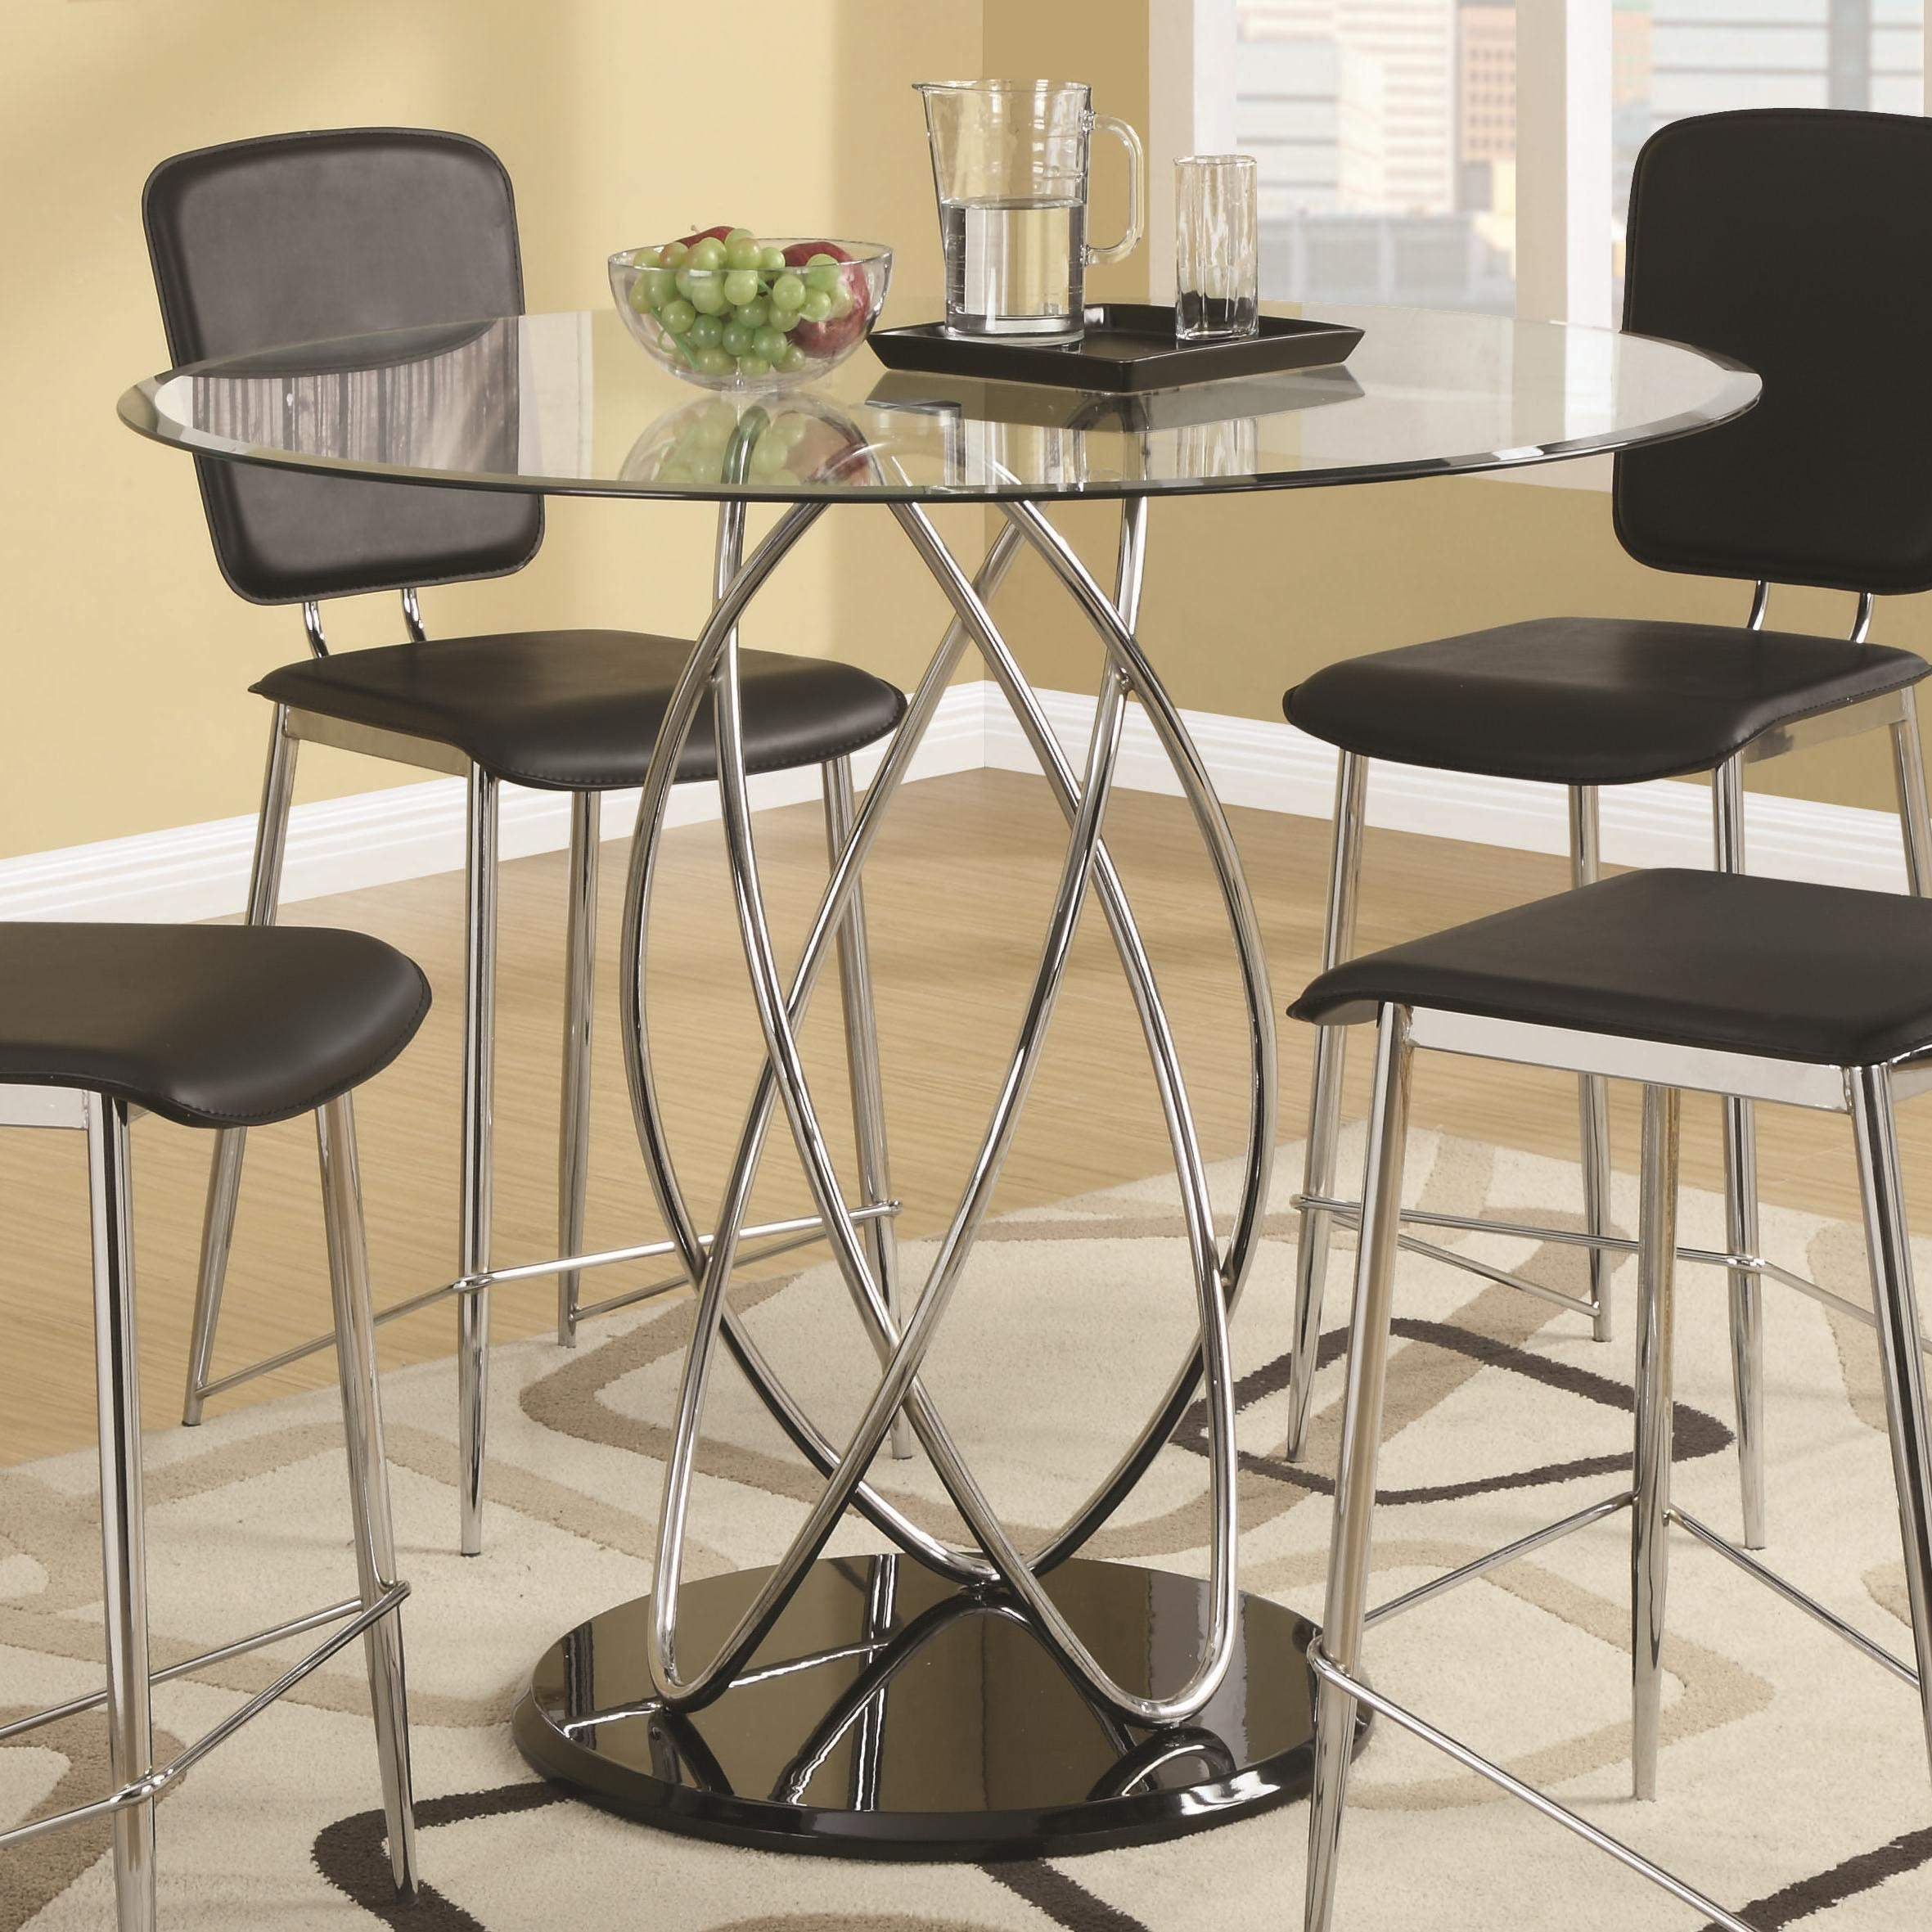 Ciccone Contemporary Glass Counter Height Table ...